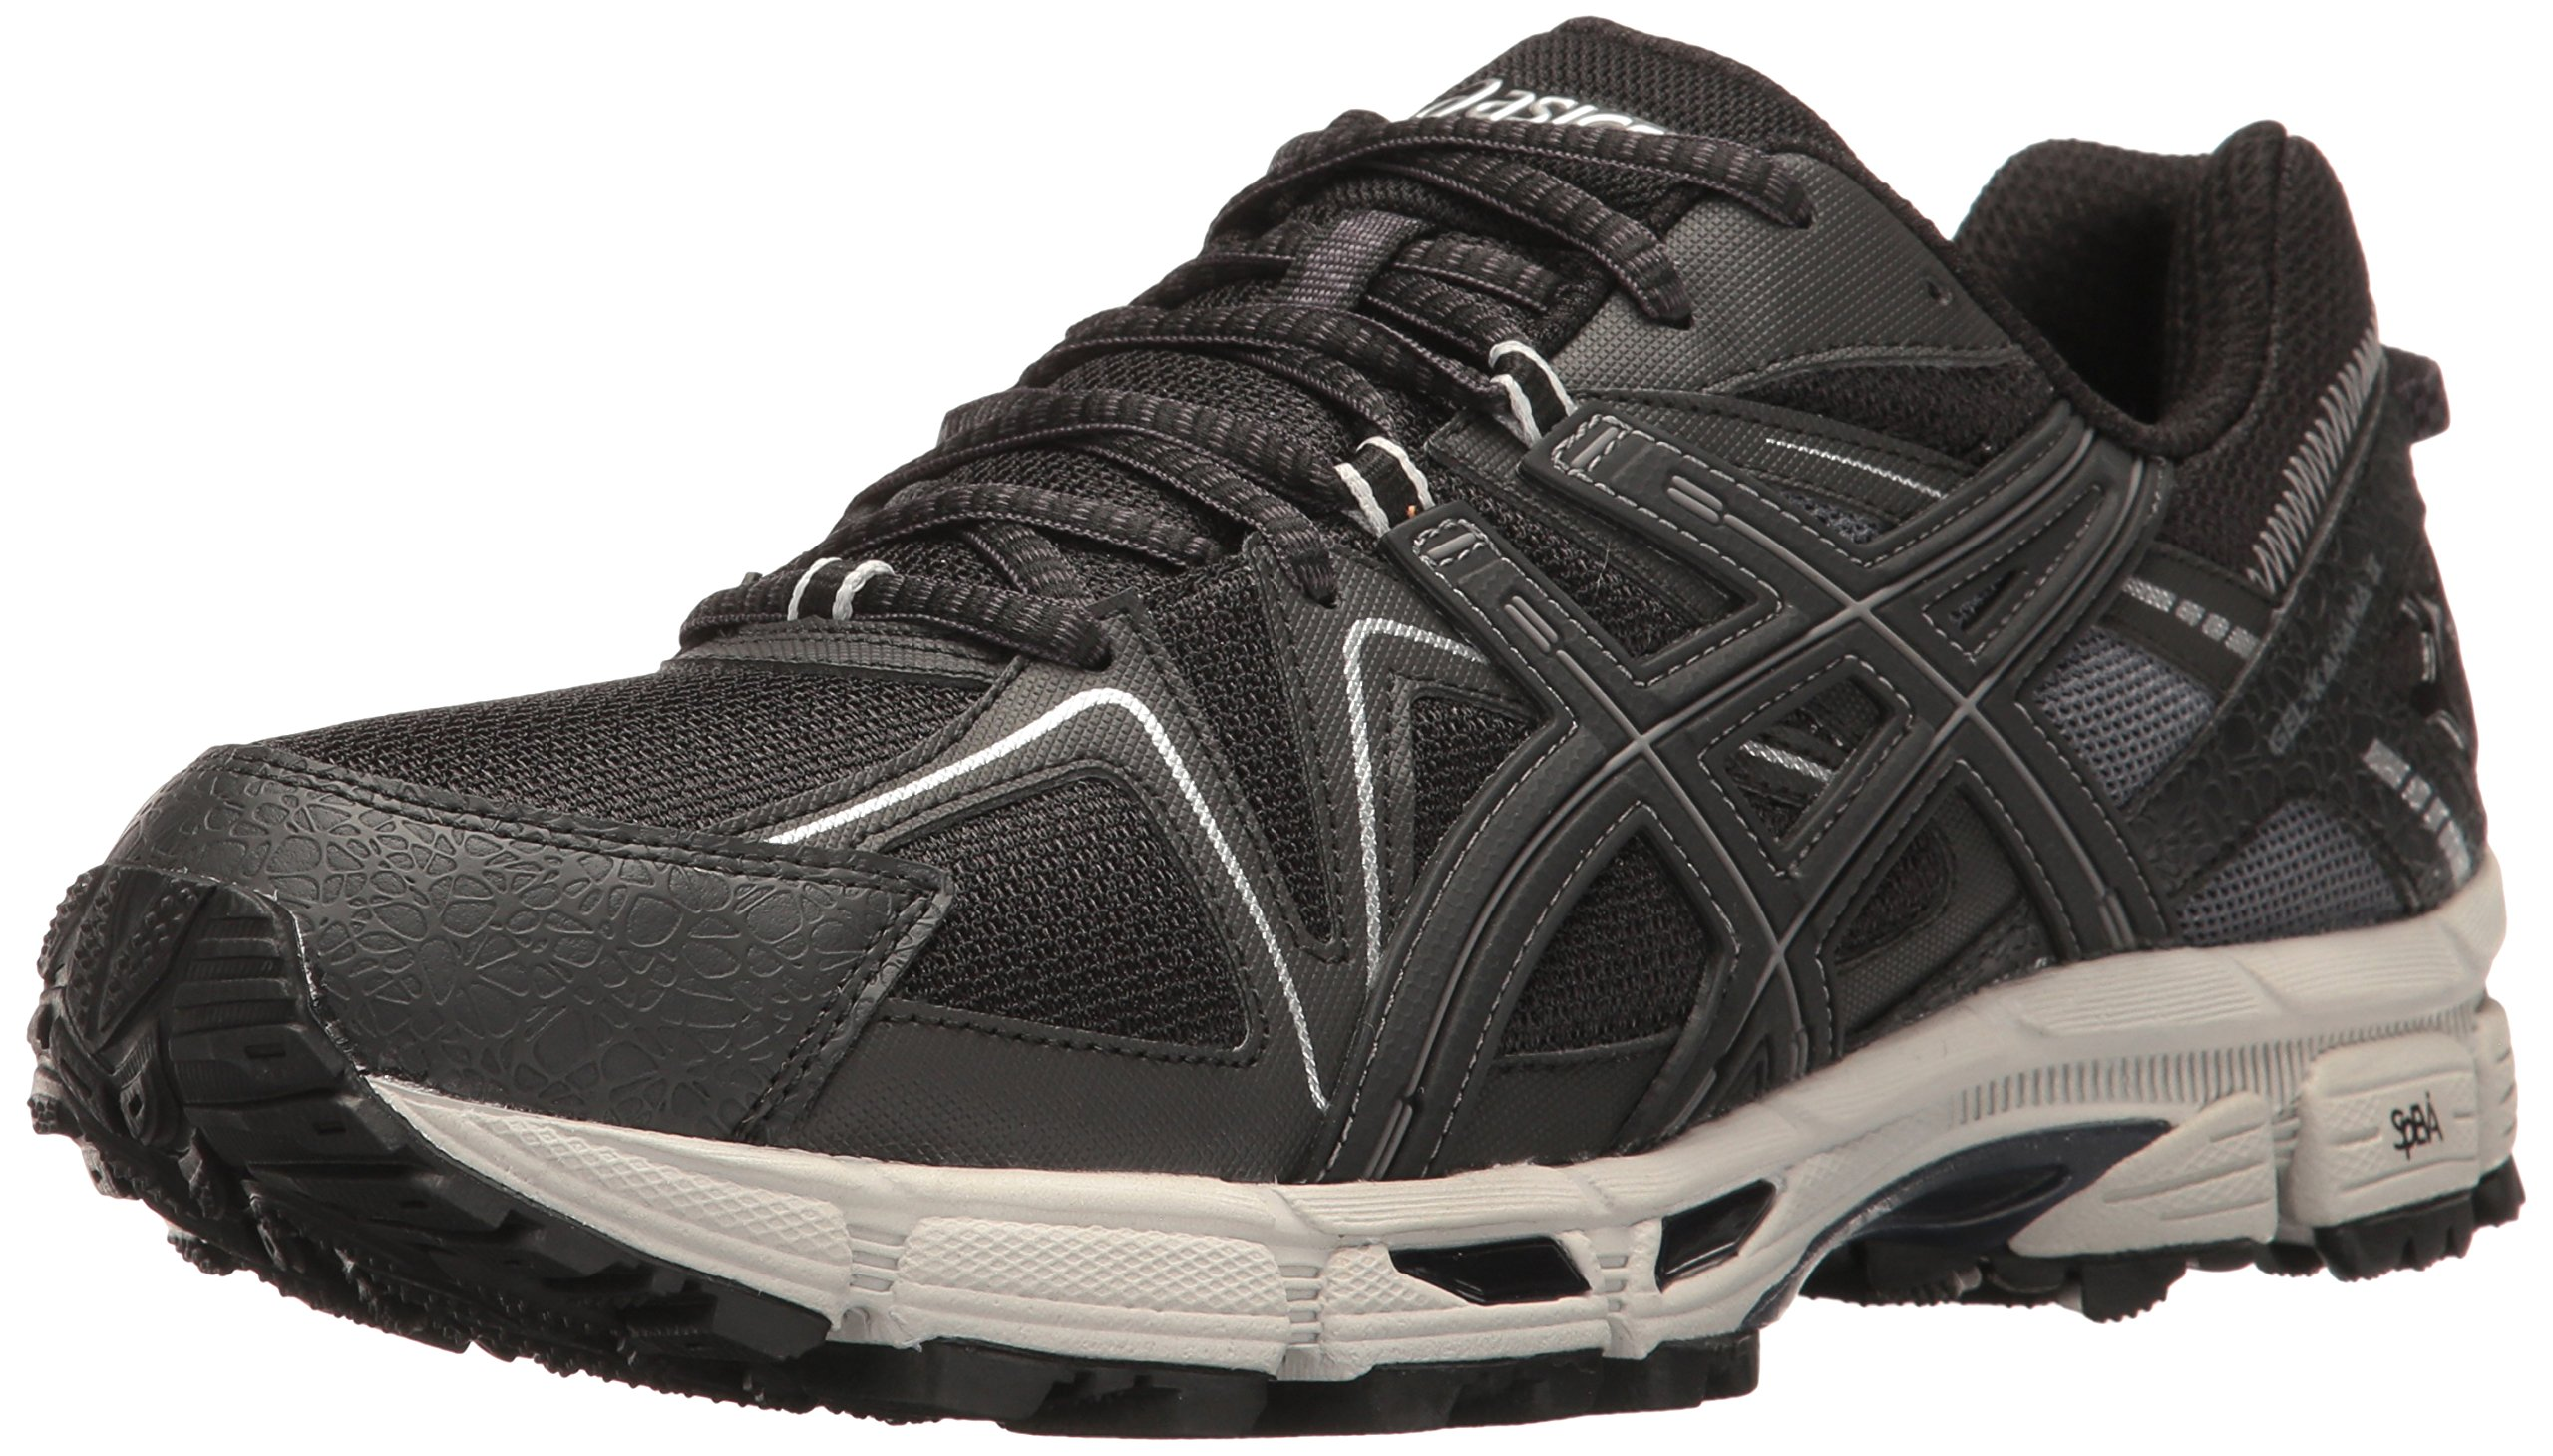 ASICS Men's Gel-Kahana 8 Trail Runner, Black/Onyx/Silver, 7.5 M US